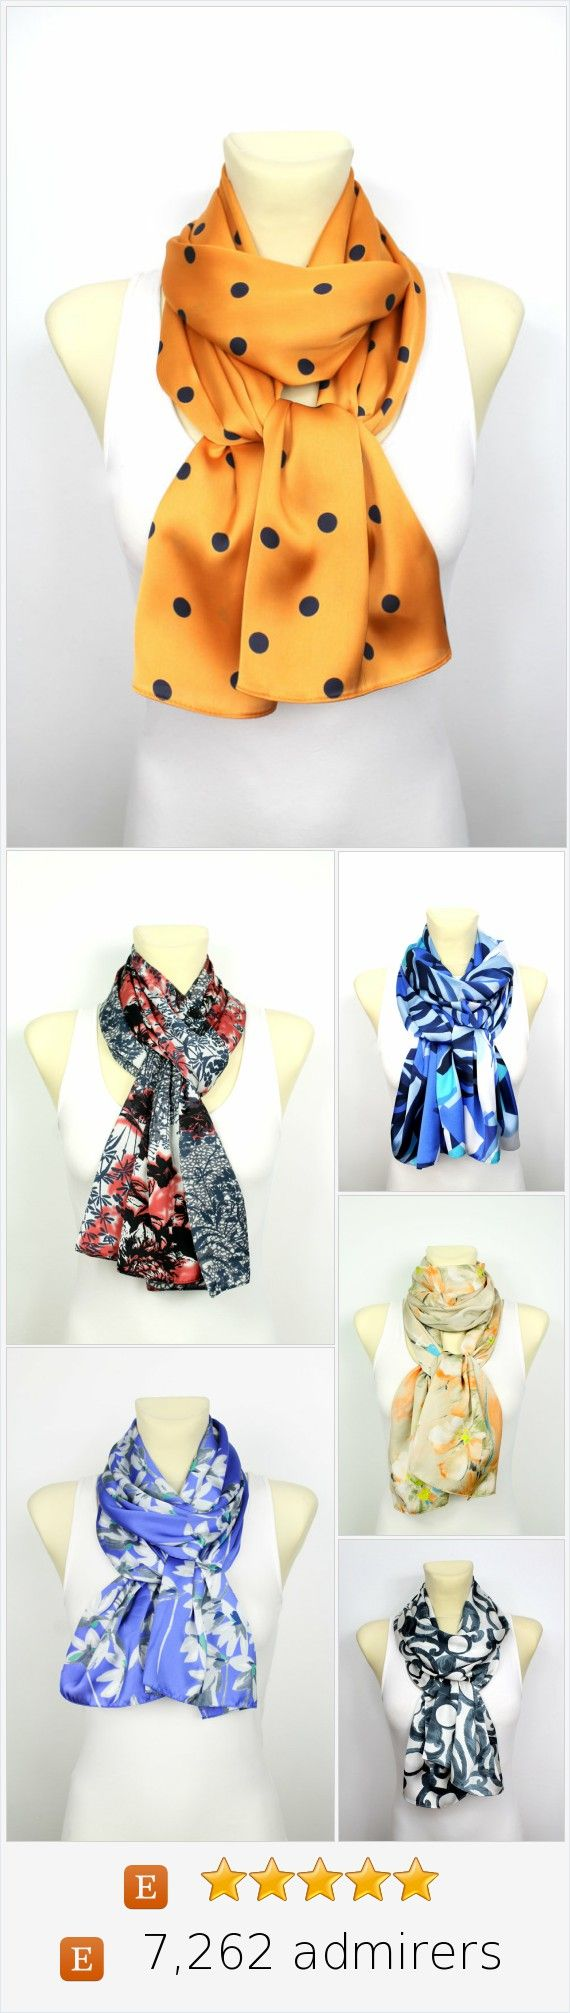 Cyber Monday Sale 15%OFF on all scarves! Use coupon code BF15OFF at the checkout. Visit Locotrends to find fantastic sale deals and get your discount today. There are chunky knit scarves, light silk scarves, satin floral scarves, infinity scarves, traditional scarves, loop scarves, women fashion scarves and many more to chose from. Great gift ideas for women and teenagers. Chose your Christmas Gifts today and get the discount :)